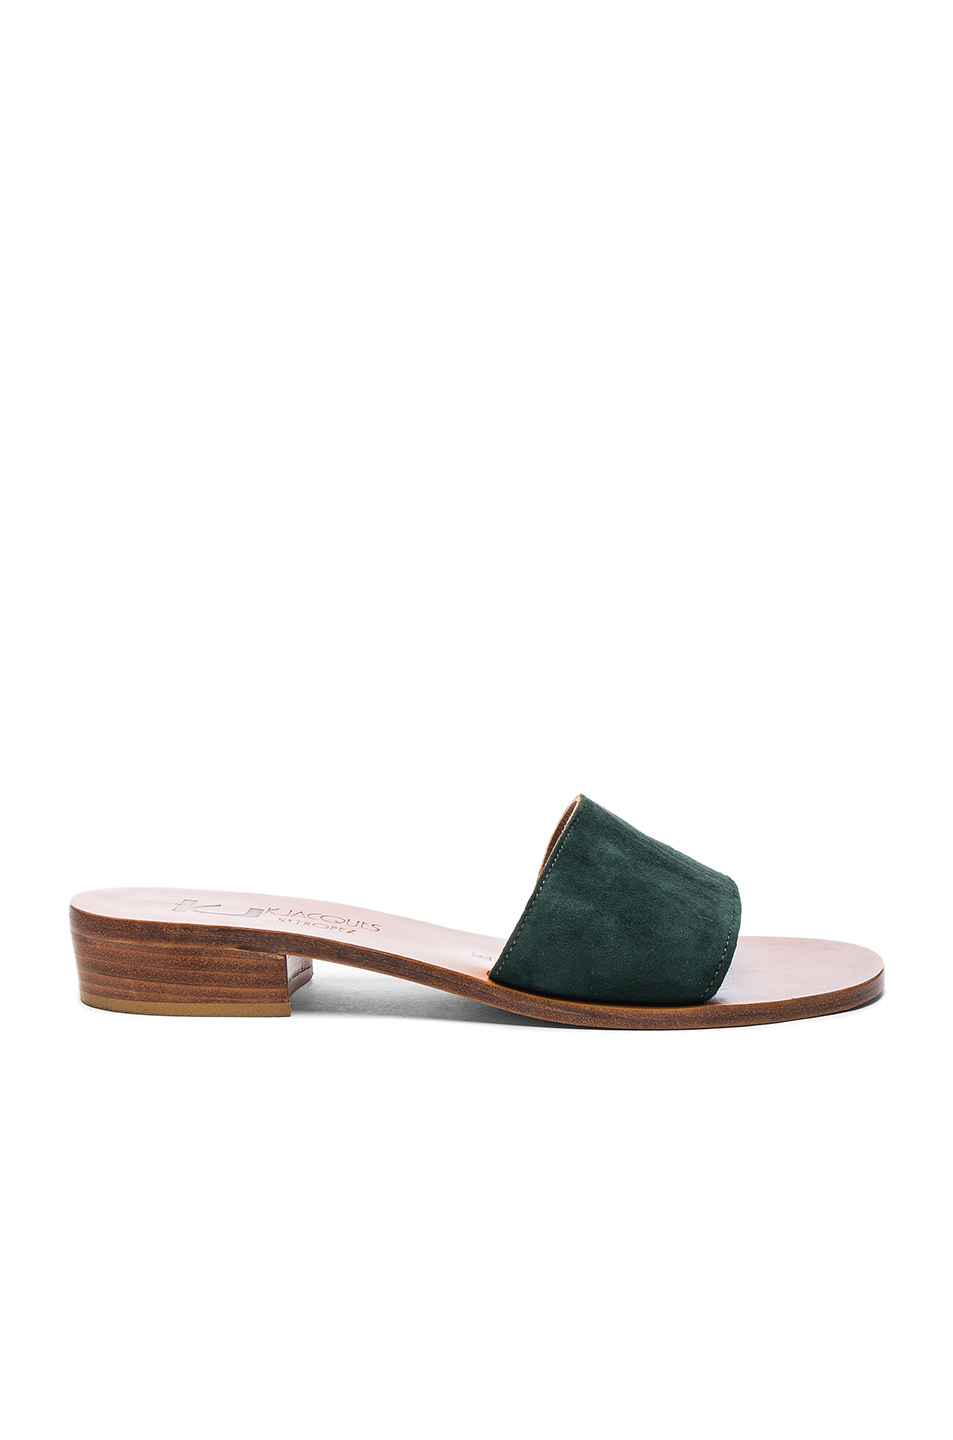 K Jacques Suede Sevan Sandals in Green